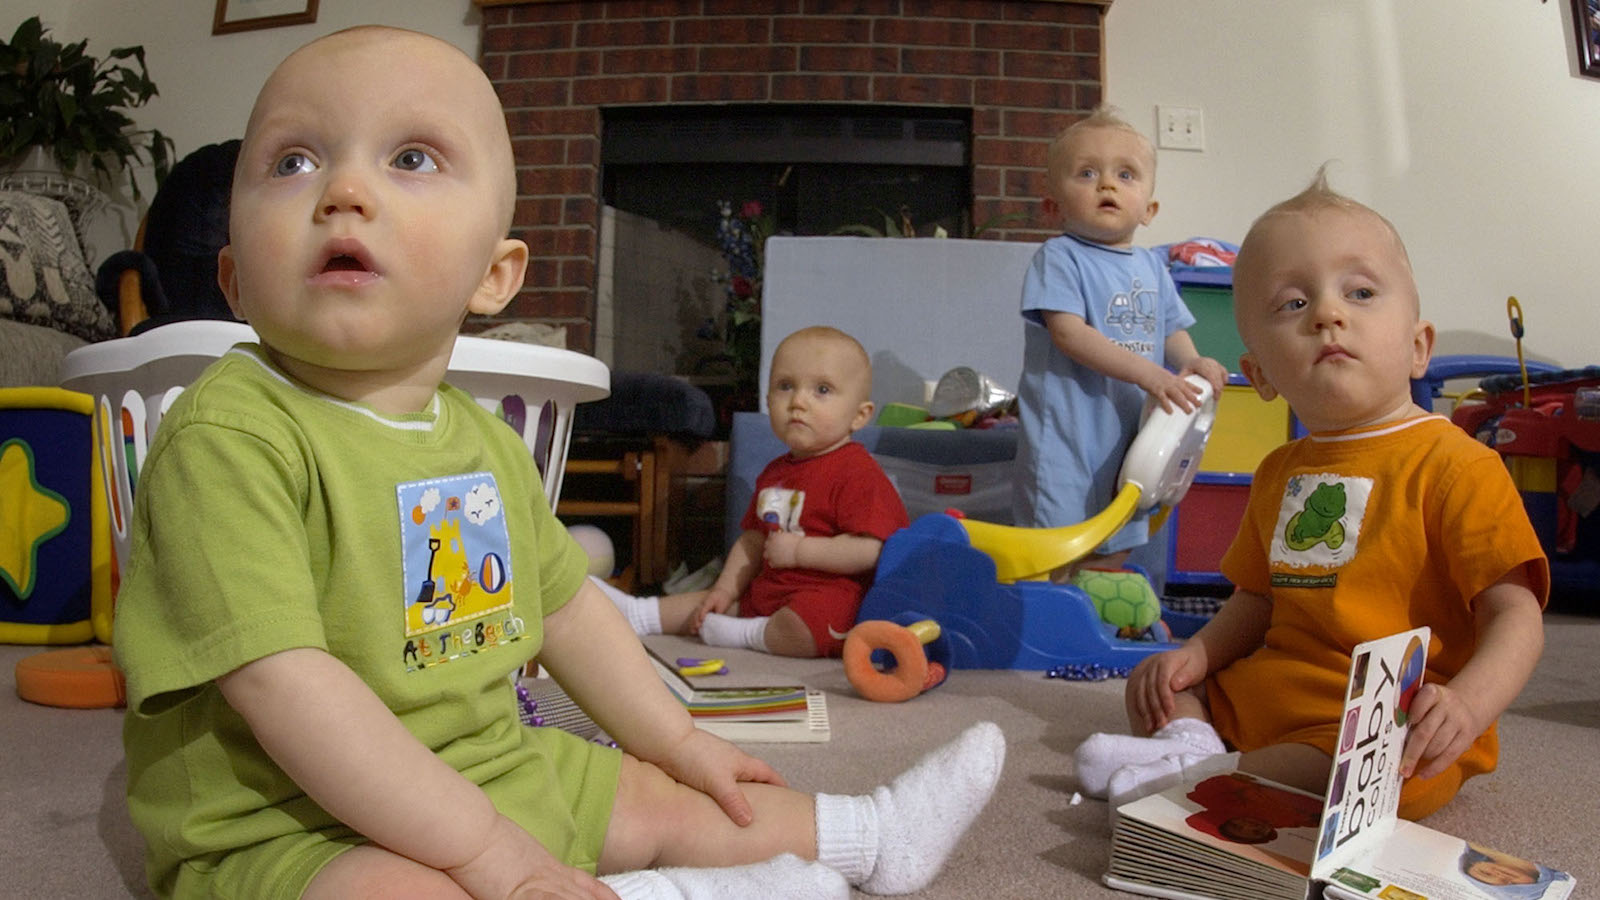 ** ADVANCE FOR APRIL 5-6 ** The Tetrick quadruplets, two sets of identical twins, watch television in their Wichita, Kan. home March 24, 2003. The siblings shown from left; Camden, Christian, Peyton and Parker were born the day before a set of sextuplets were delivered nearly a year ago in Wichita.  (AP Photo/Charlie Riedel)